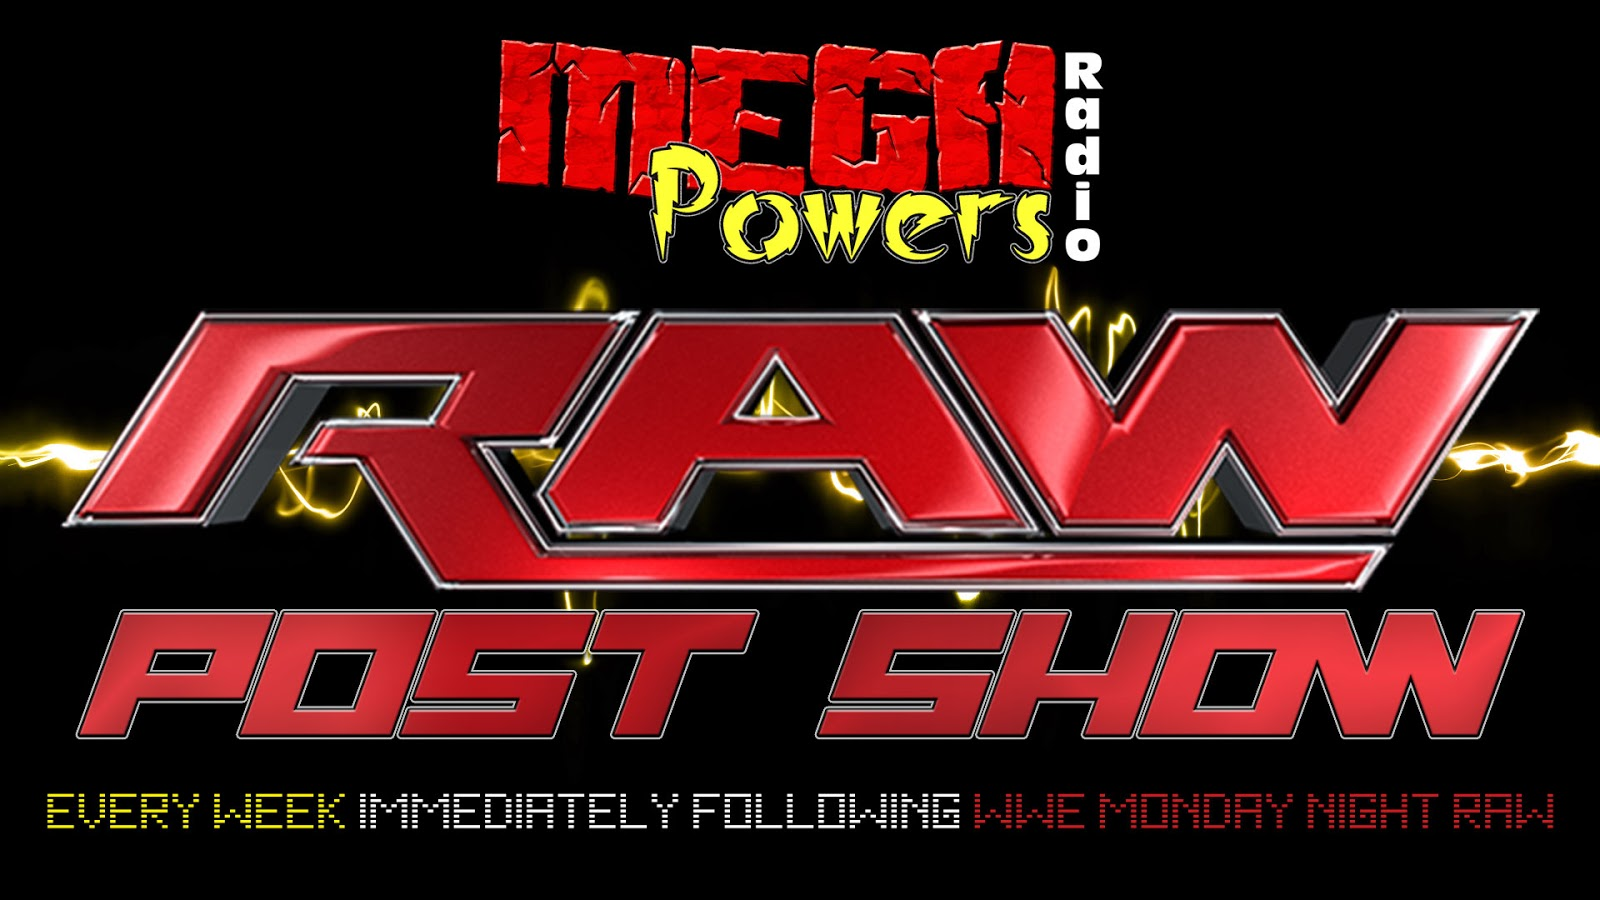 March 21, 2016 Monday Night Raw Full Show Download Stream